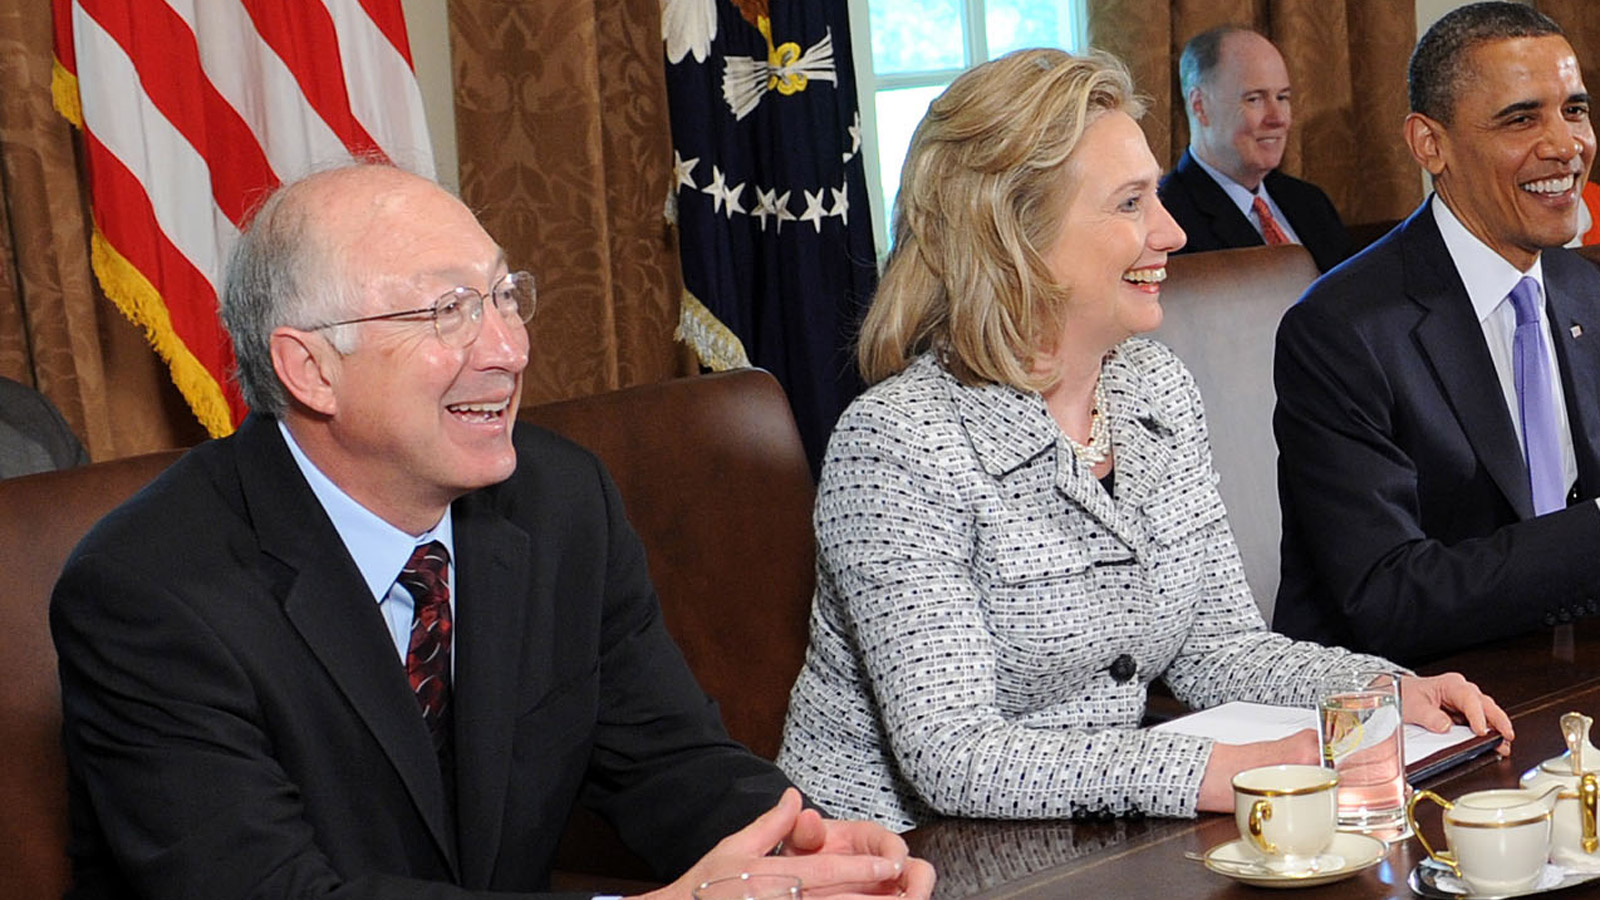 Secretary of Interior Ken Salazar and Secretary of State Hillary Clinton in a 2011 Cabinet meeting of President Barack Obama's in Washington (credit: Leslie E. Kossoff-Pool/Getty Images)